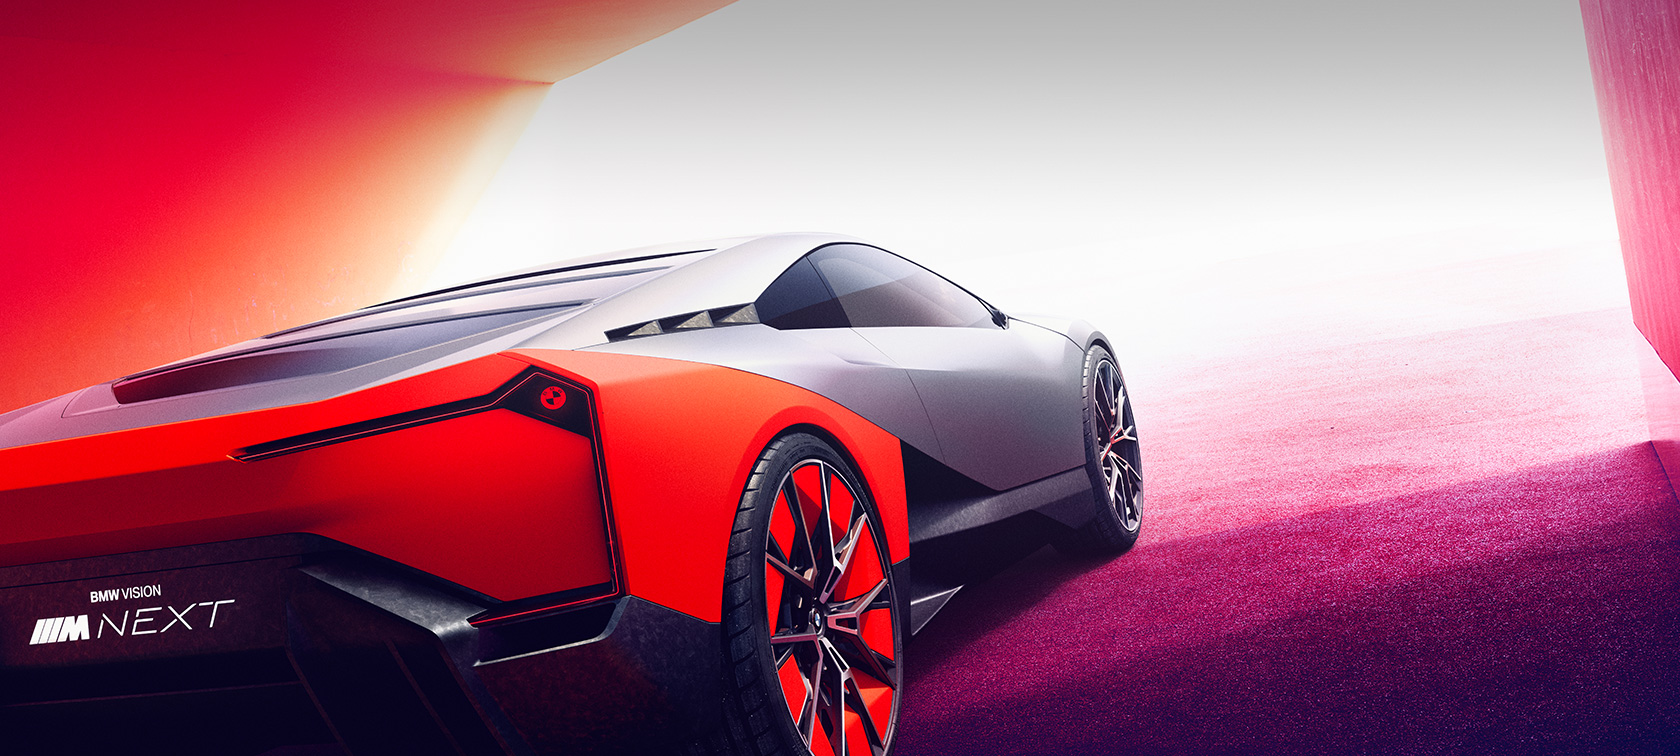 BMW Vision M NEXT, Artwork neutrale